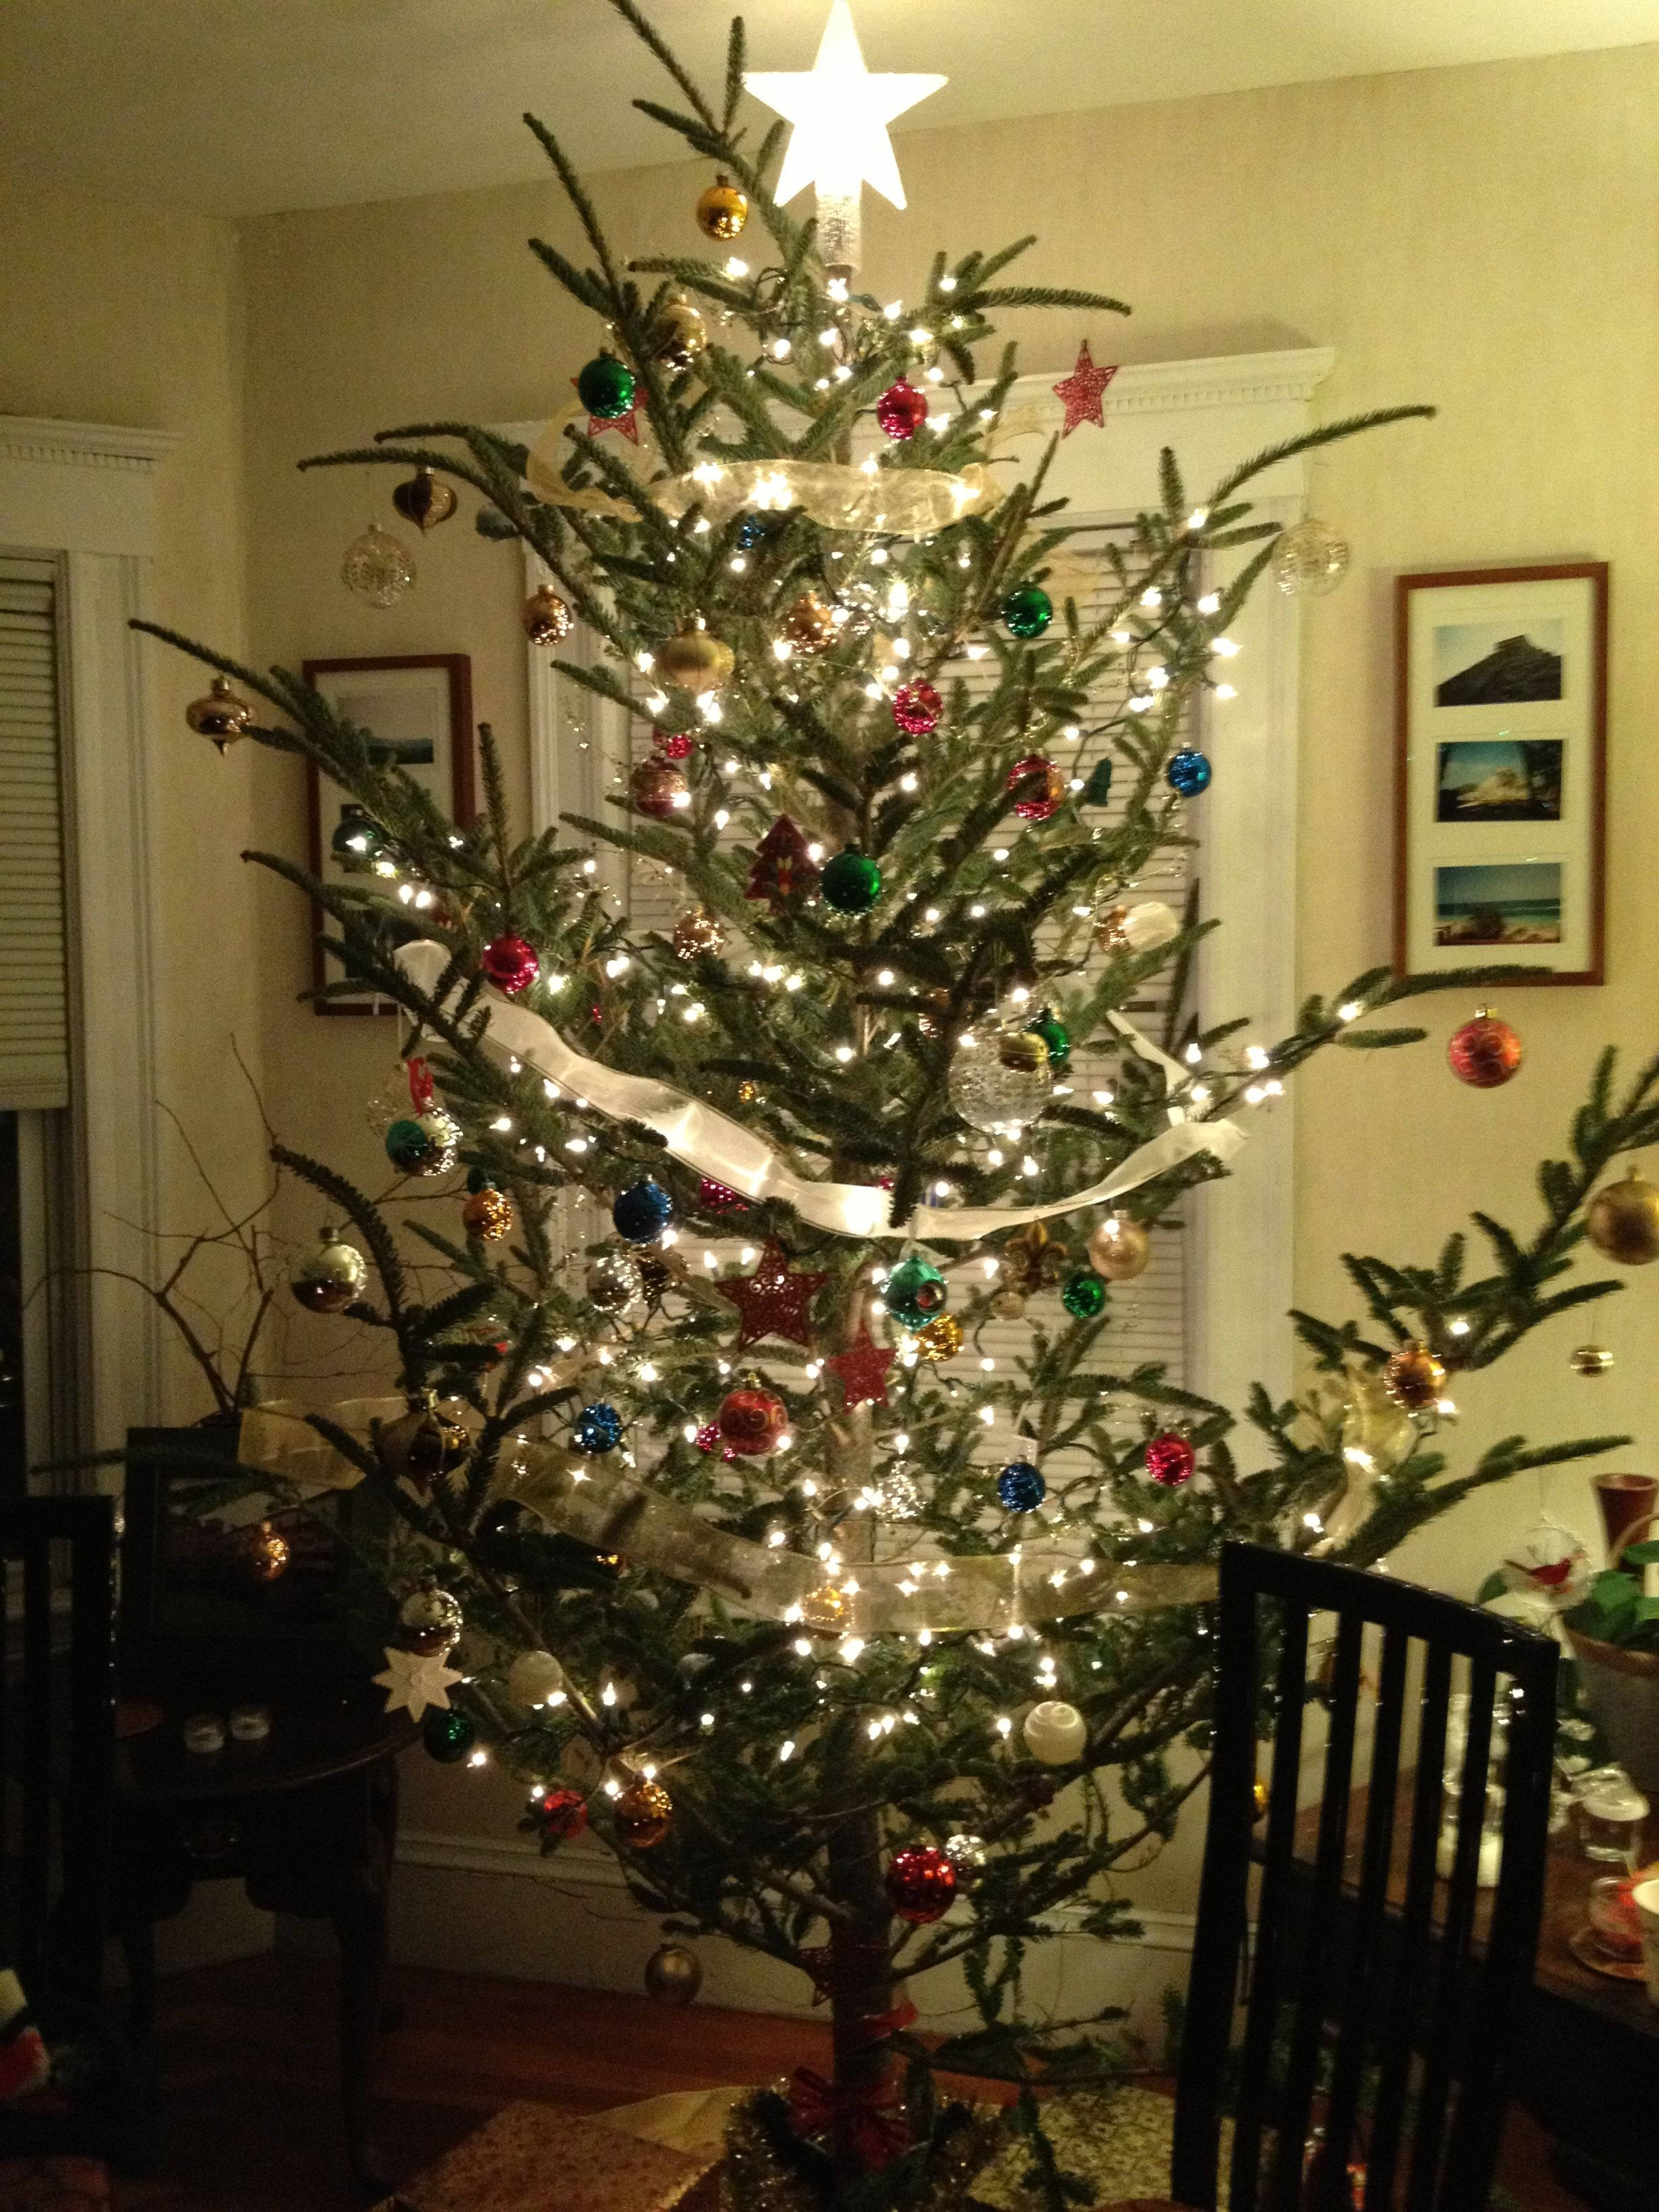 Old Fashioned Christmas Decorations old fashioned christmas tree | holiday decor | pinterest